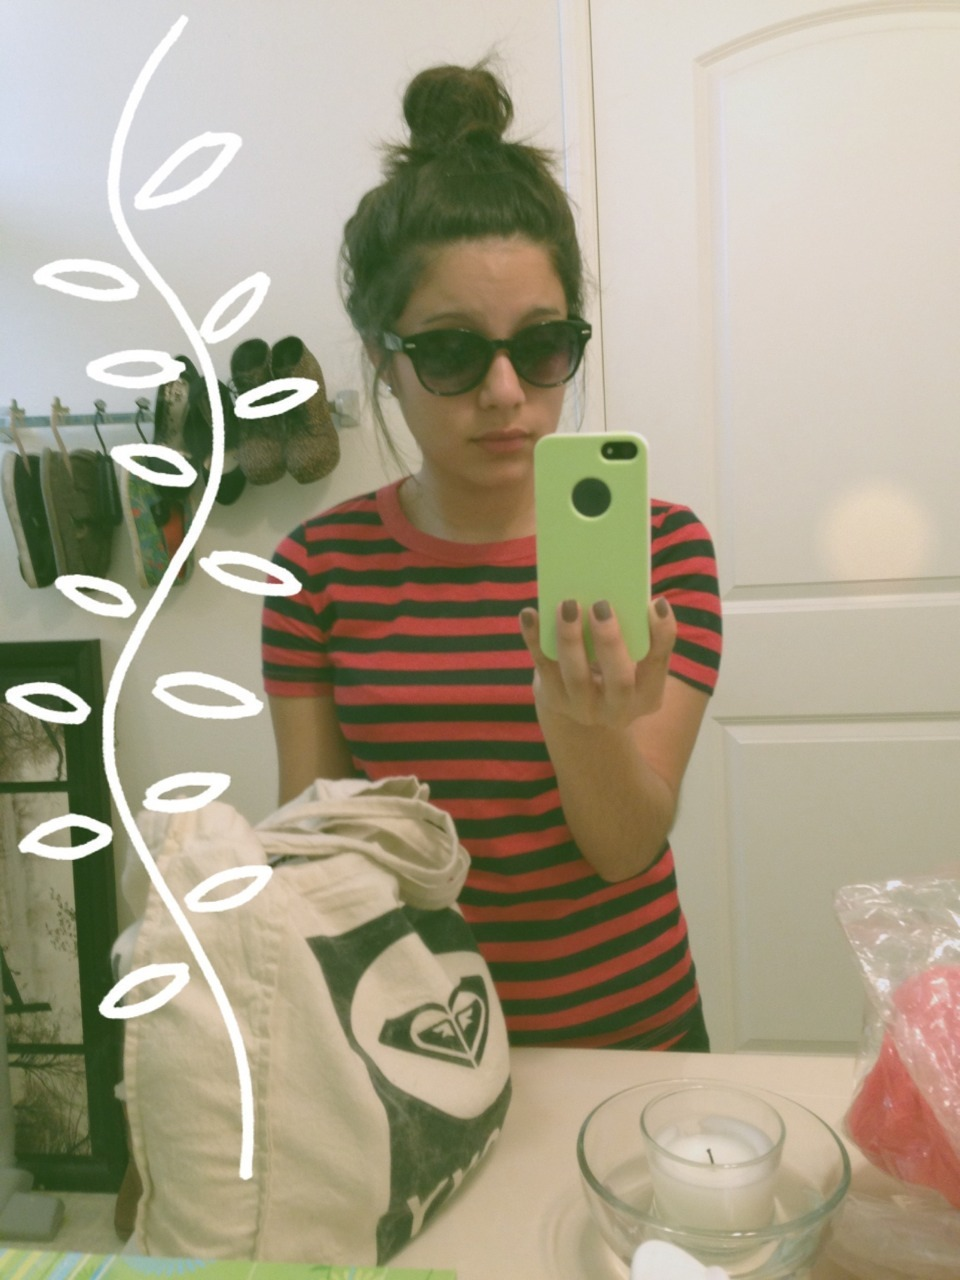 new sunglasses yay 😎